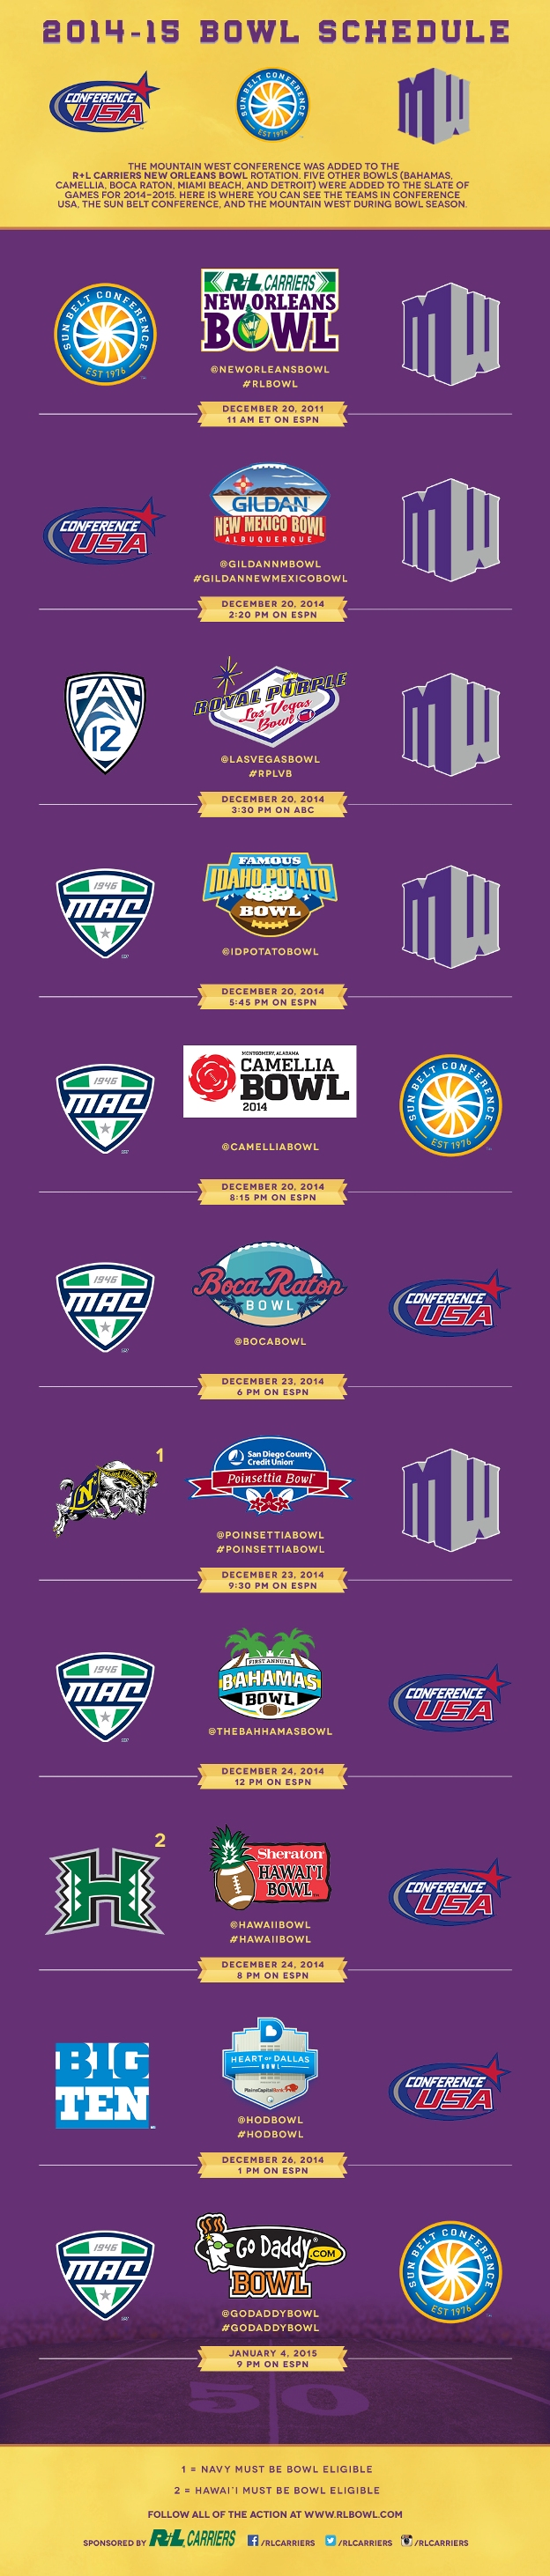 Bowl Game Tie-Ins Explained - R+L Carriers New Orleans Bowl